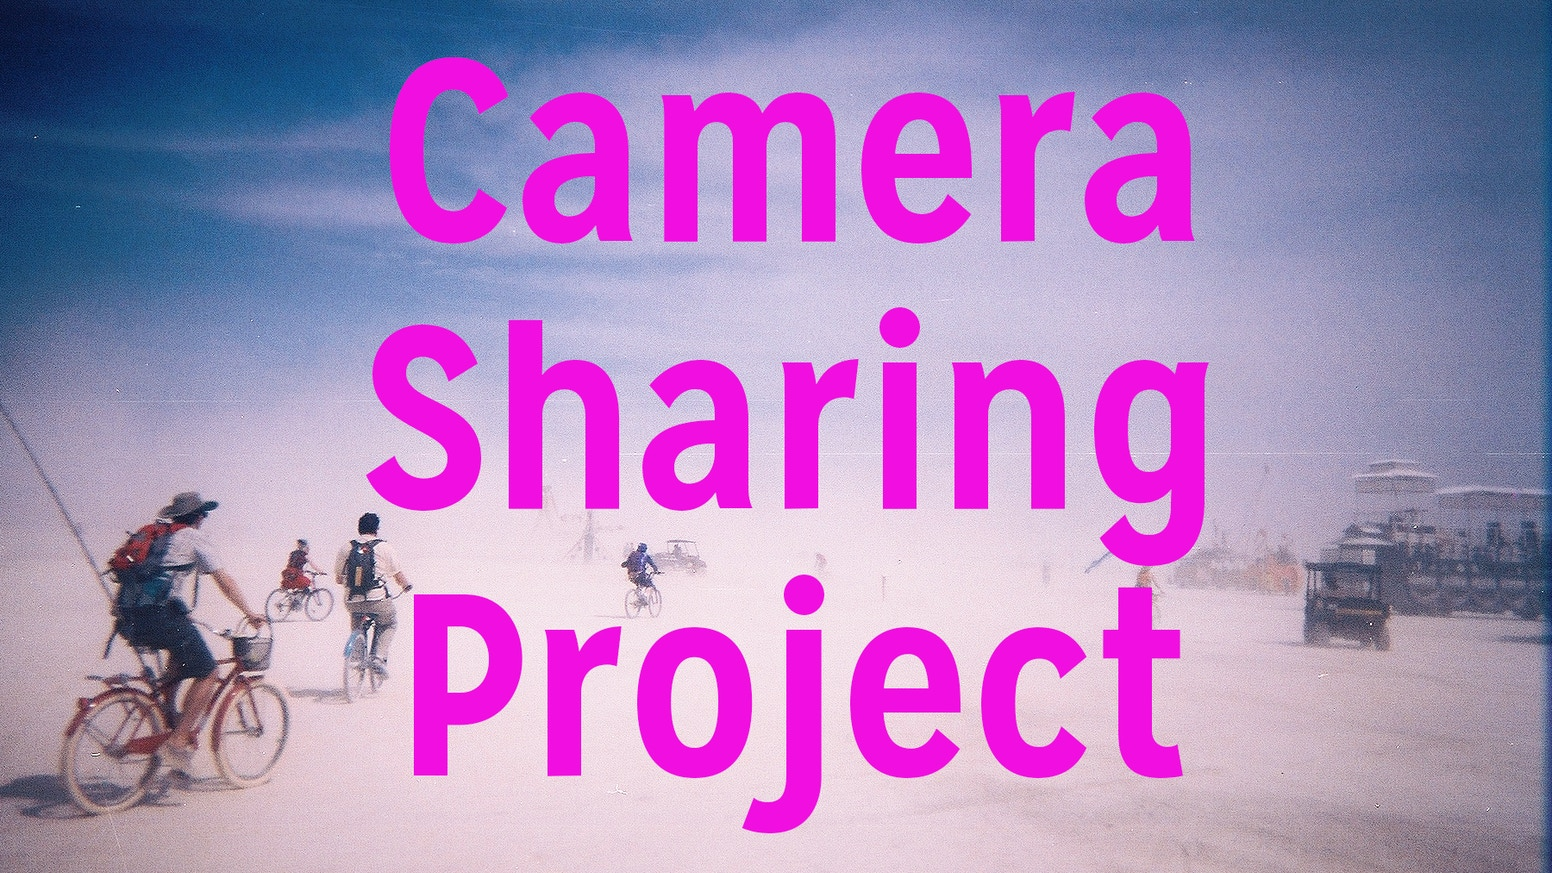 The plan is to distribute at least 500 disposable cameras around the world and share the results! Lets share photography!